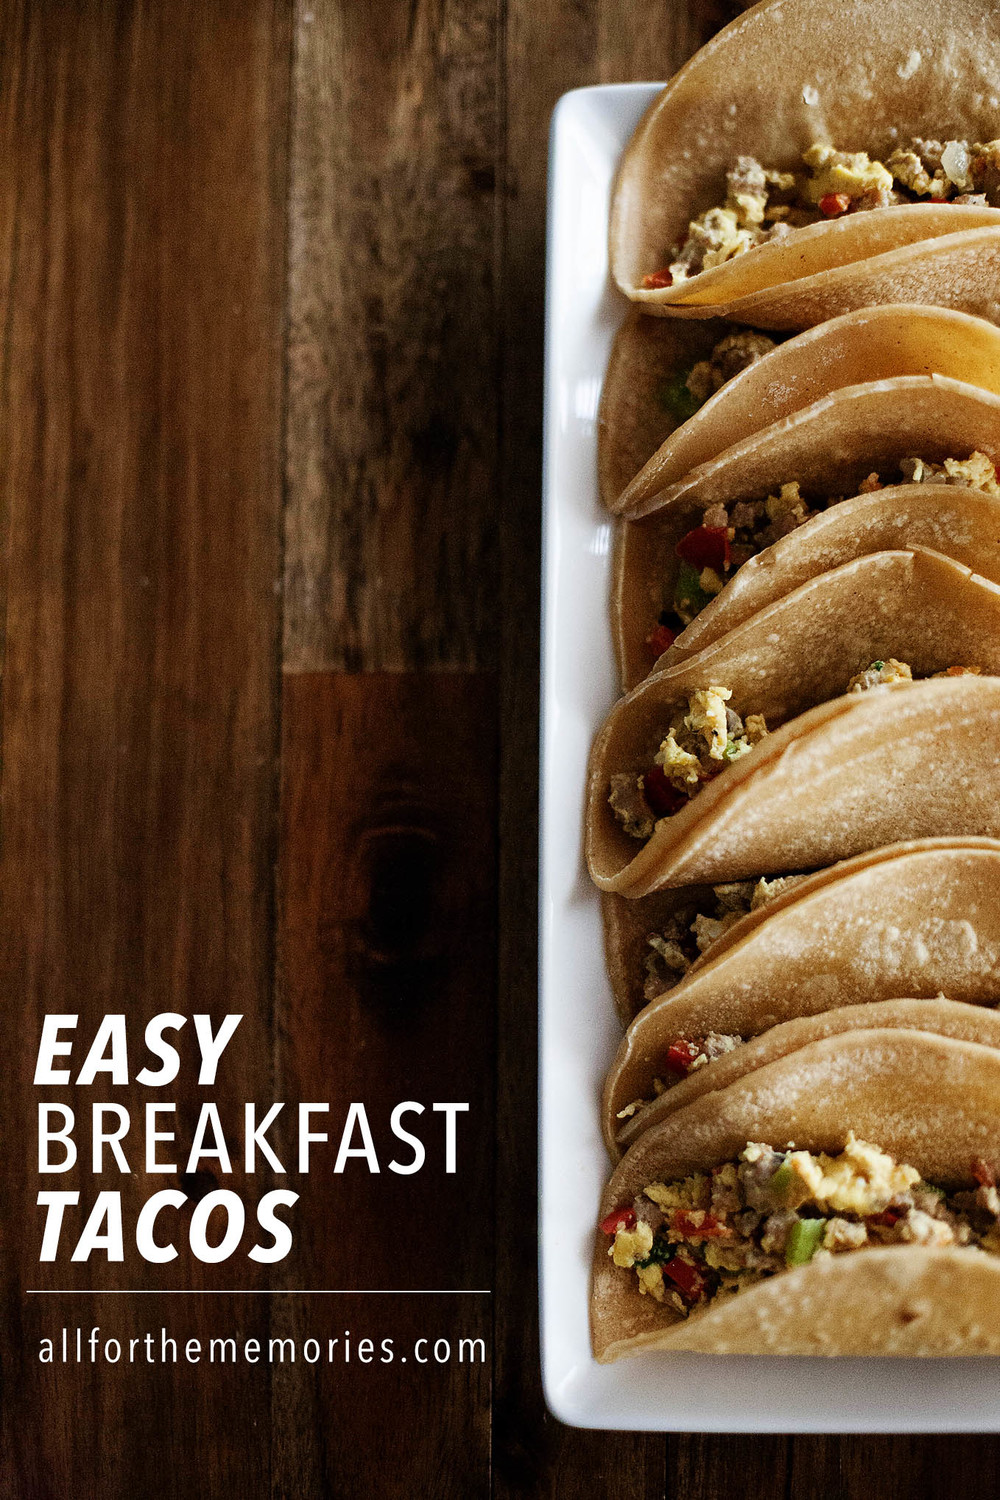 Easy breakfast tacos - gluten free